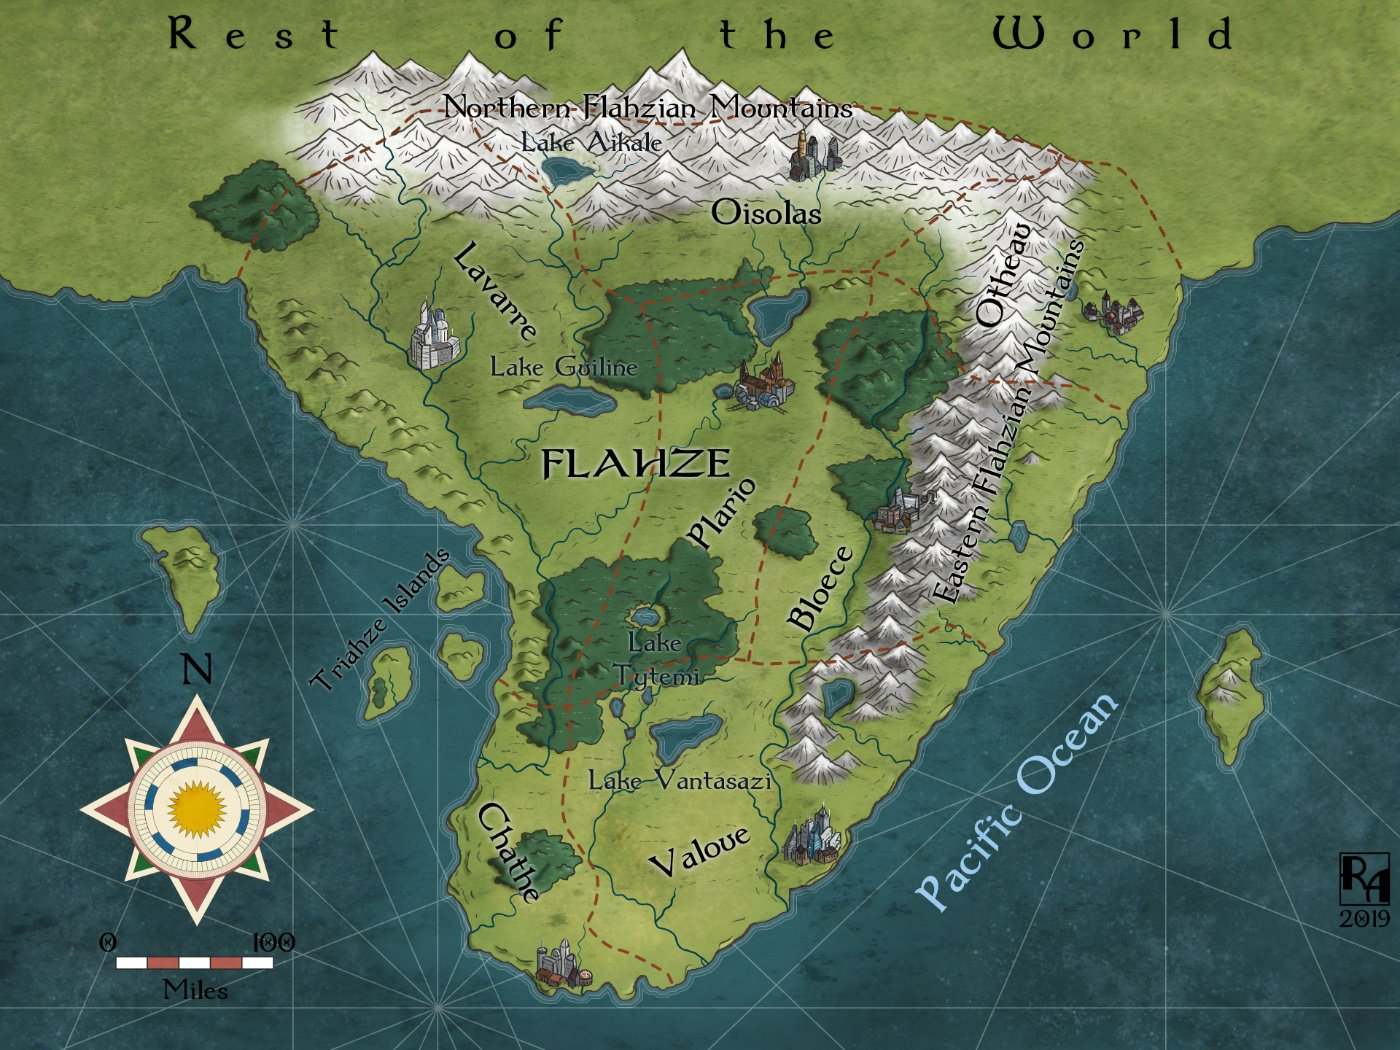 My Cartographic Work - Share your work - Affinity | Forum on world map tester, world map costume, world map dresses, world map size, world map vintage, world map modern, world map business, world map gold, world map bedroom decor, world map retail, world map illustrator, world map cook, world map color, world map creator, world map sports, world map rain, world map photography, world map teacher, world map design, world map name,